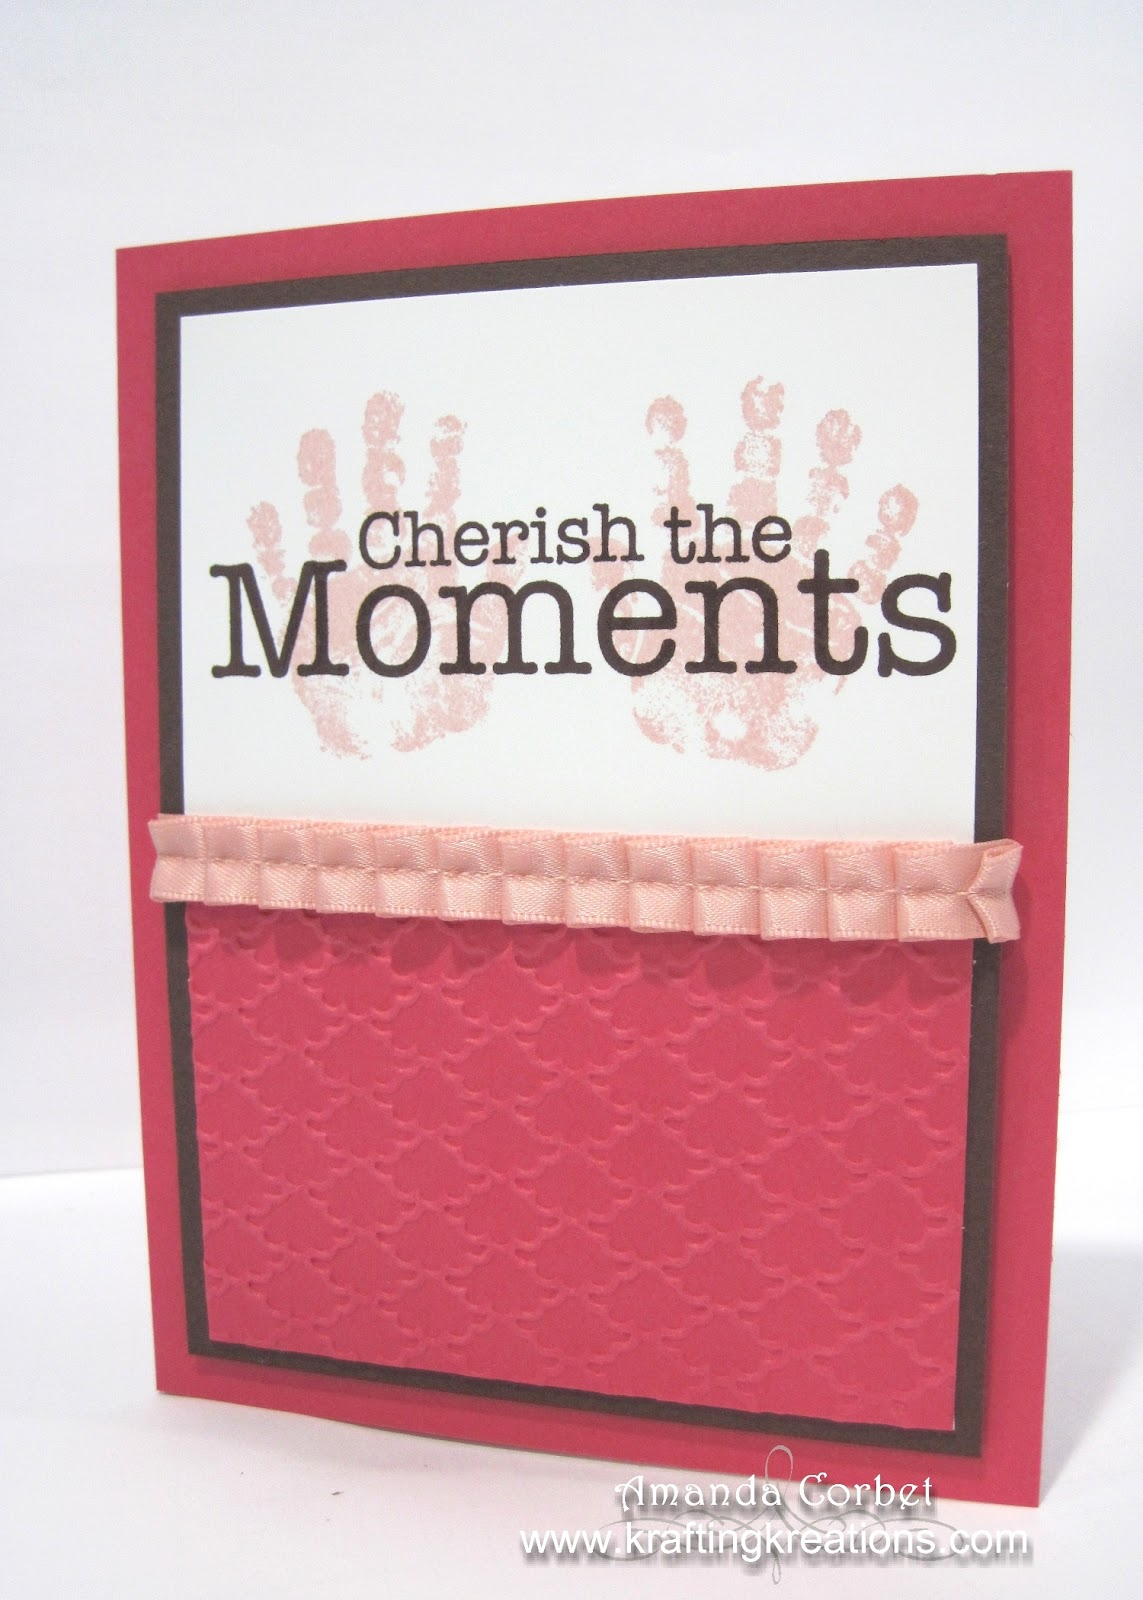 Cherish the Moments Girly Version